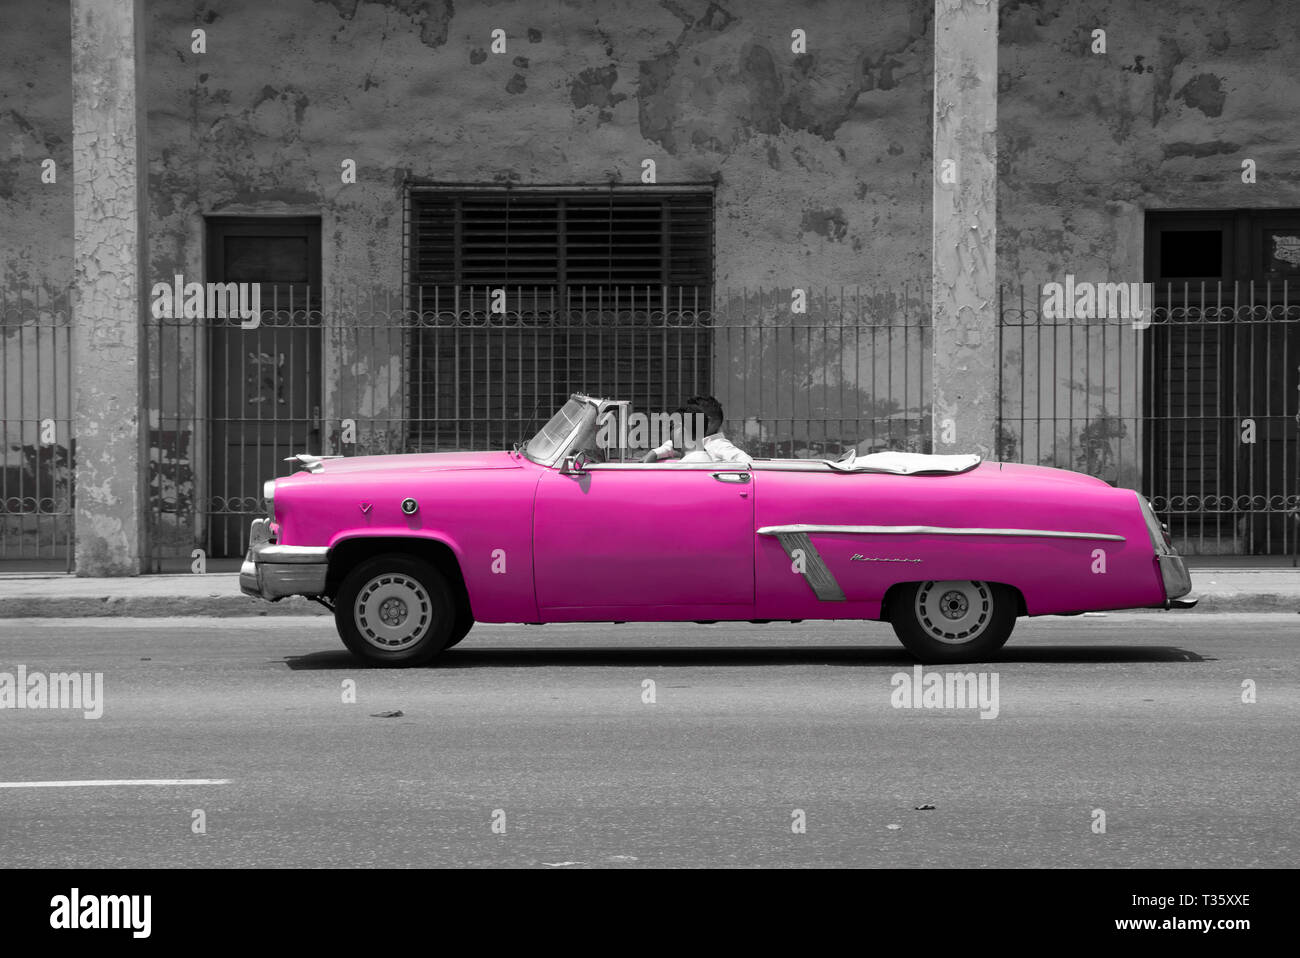 side view of two men in pink classic 1950s American car against a black and white background of a street scene in Havana Cuba Stock Photo